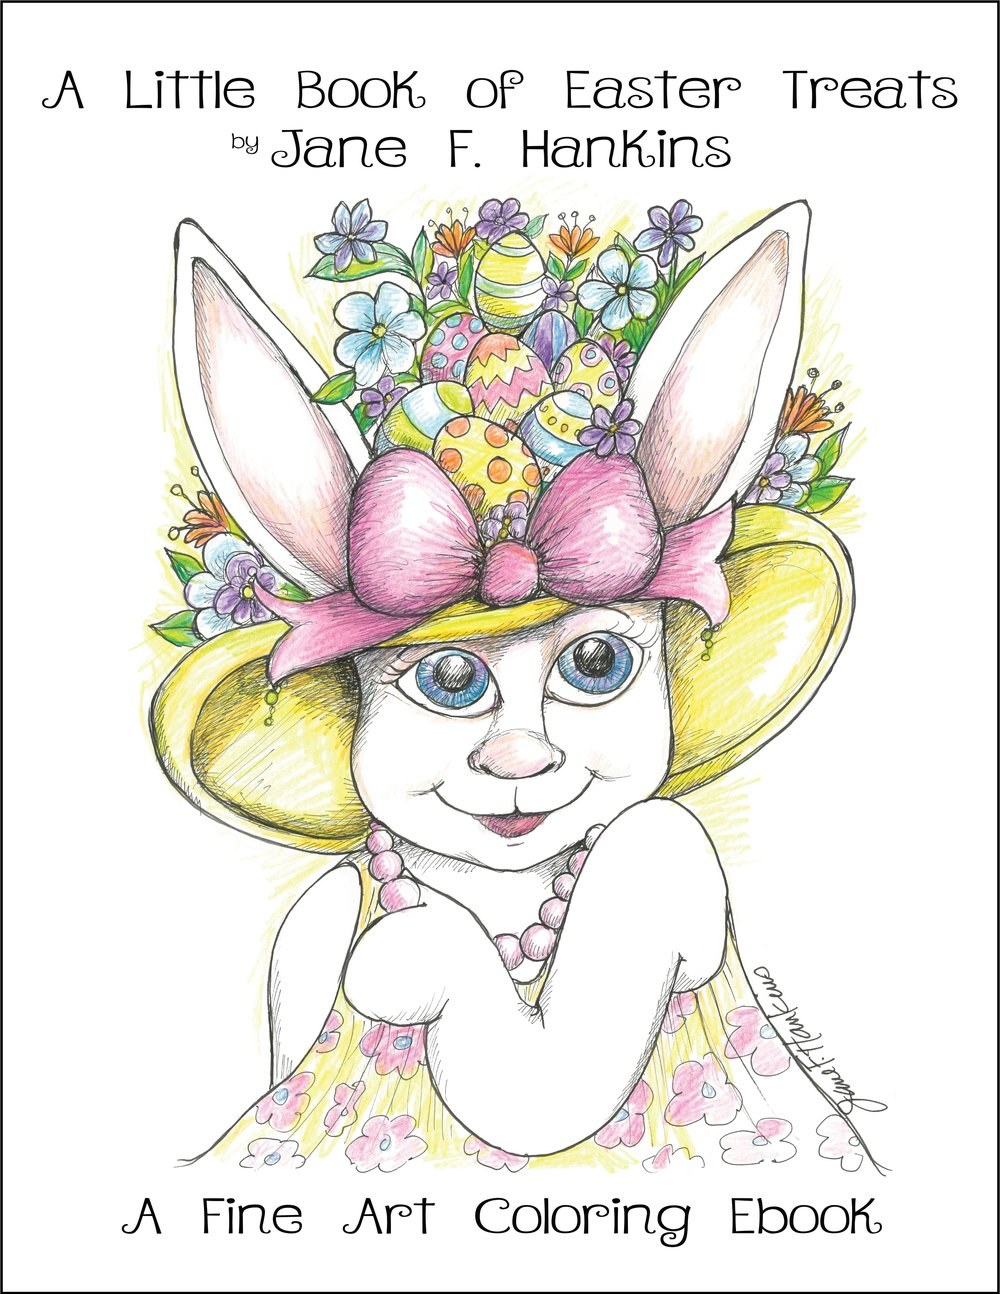 The little book of Easter Treatsby Jane F. Hankins